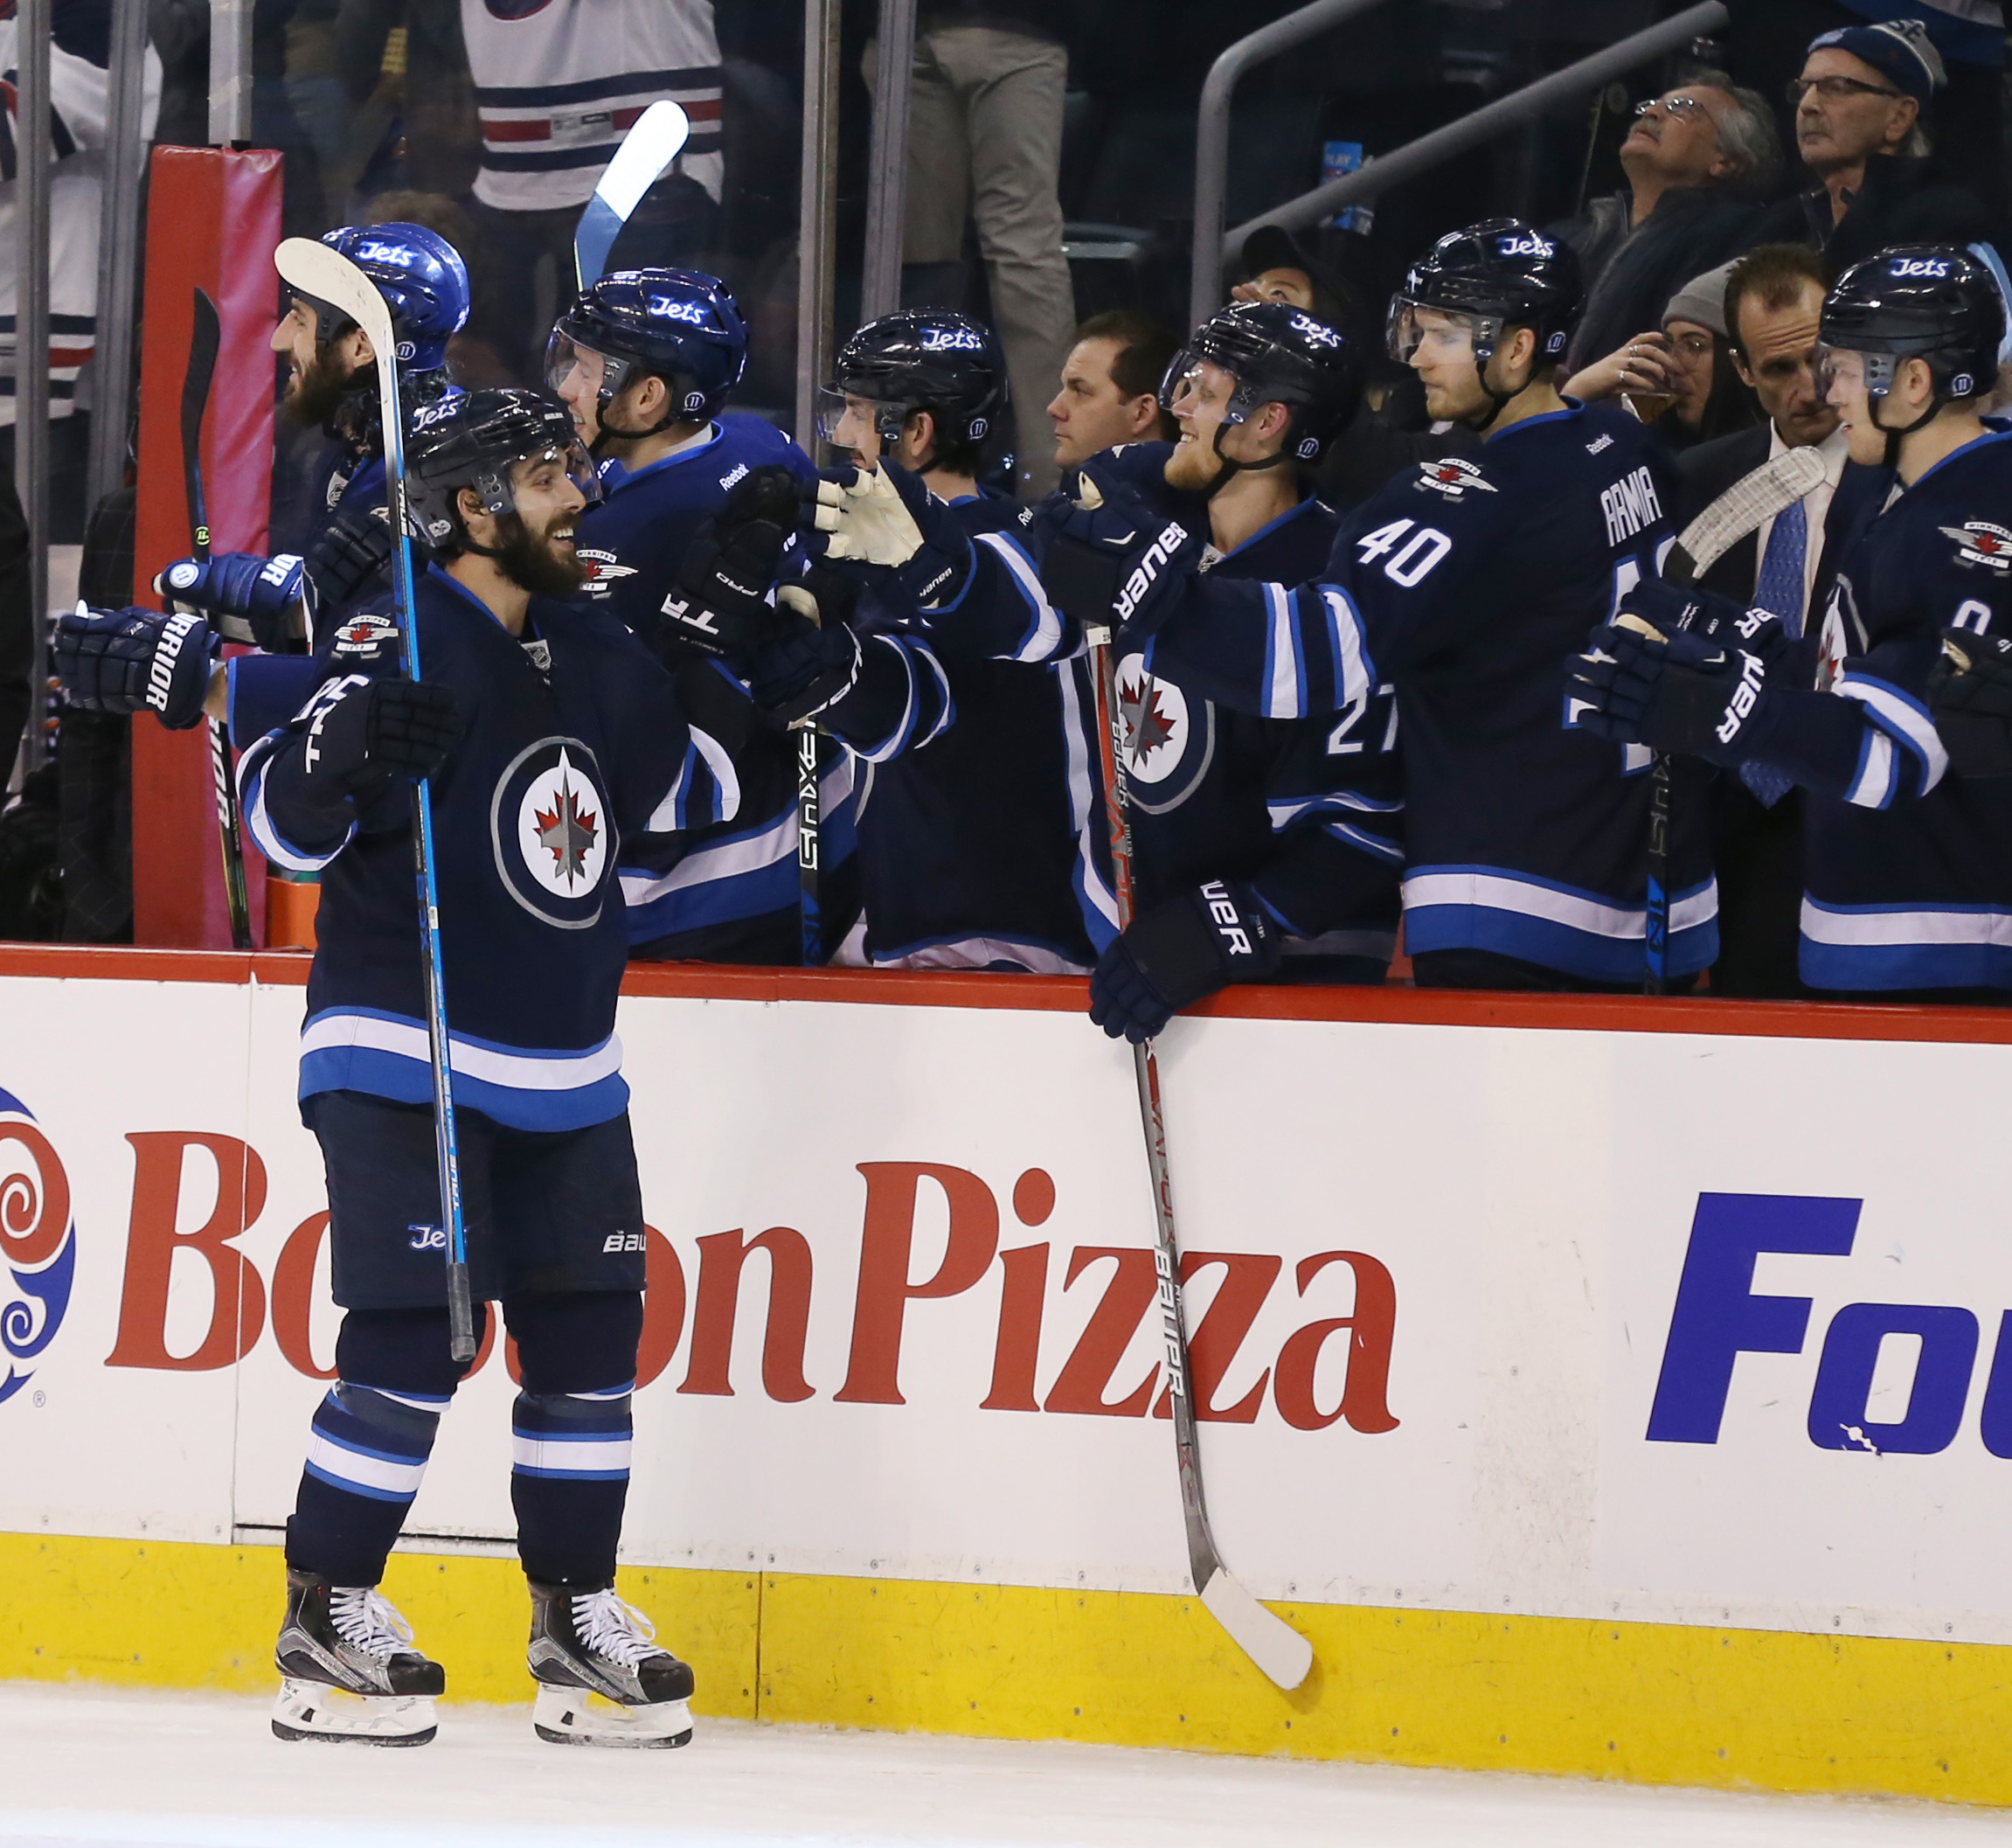 Mar 21, 2017; Winnipeg, Manitoba, CAN; Winnipeg Jets center Mathieu Perreault (85) celebrates with teammates after scoring a goal during the third period against the Philadelphia Flyers at MTS Centre. Winnipeg Jets win 3-2. Mandatory Credit: Bruce Fedyck-USA TODAY Sports